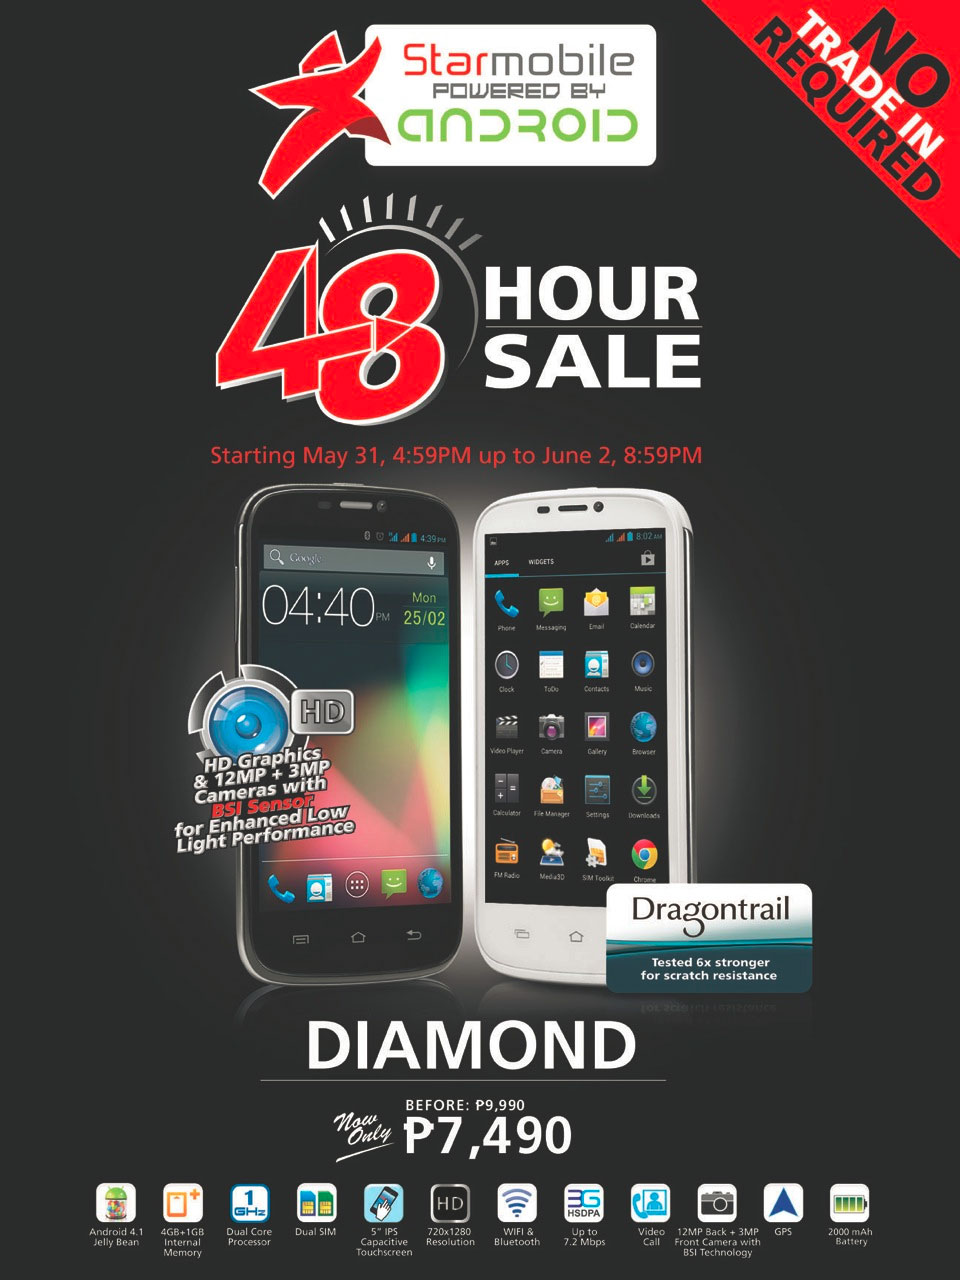 5-inch Starmobile Diamond on sale for Php7,490 until June 2 only ...